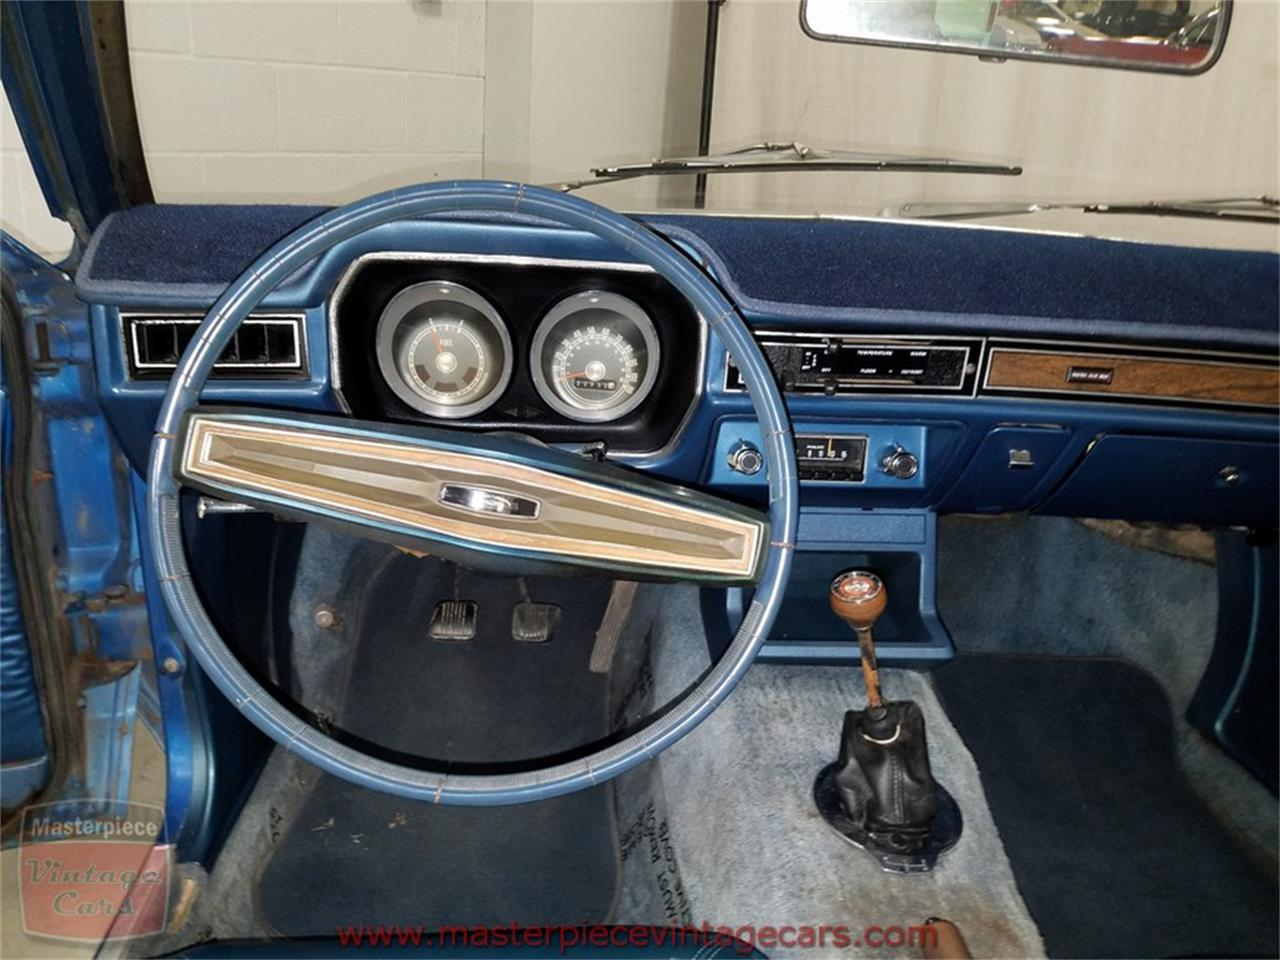 1973 Ford Pinto for sale in Whiteland, IN – photo 35